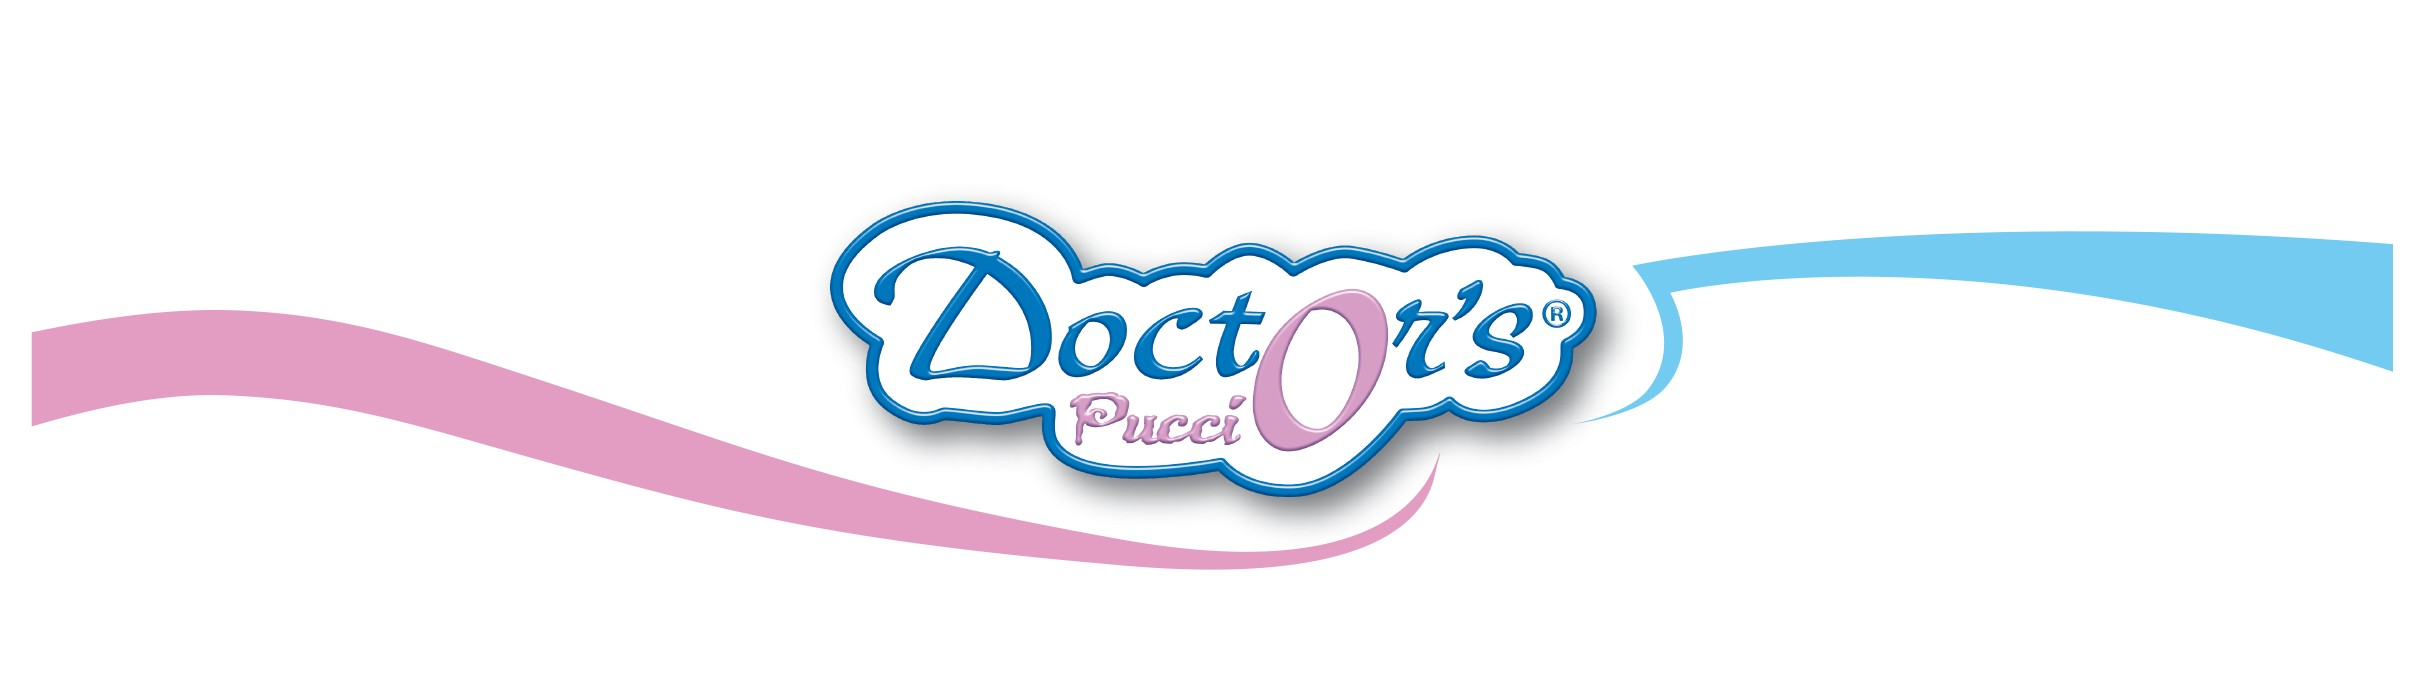 Doctor's Pucci